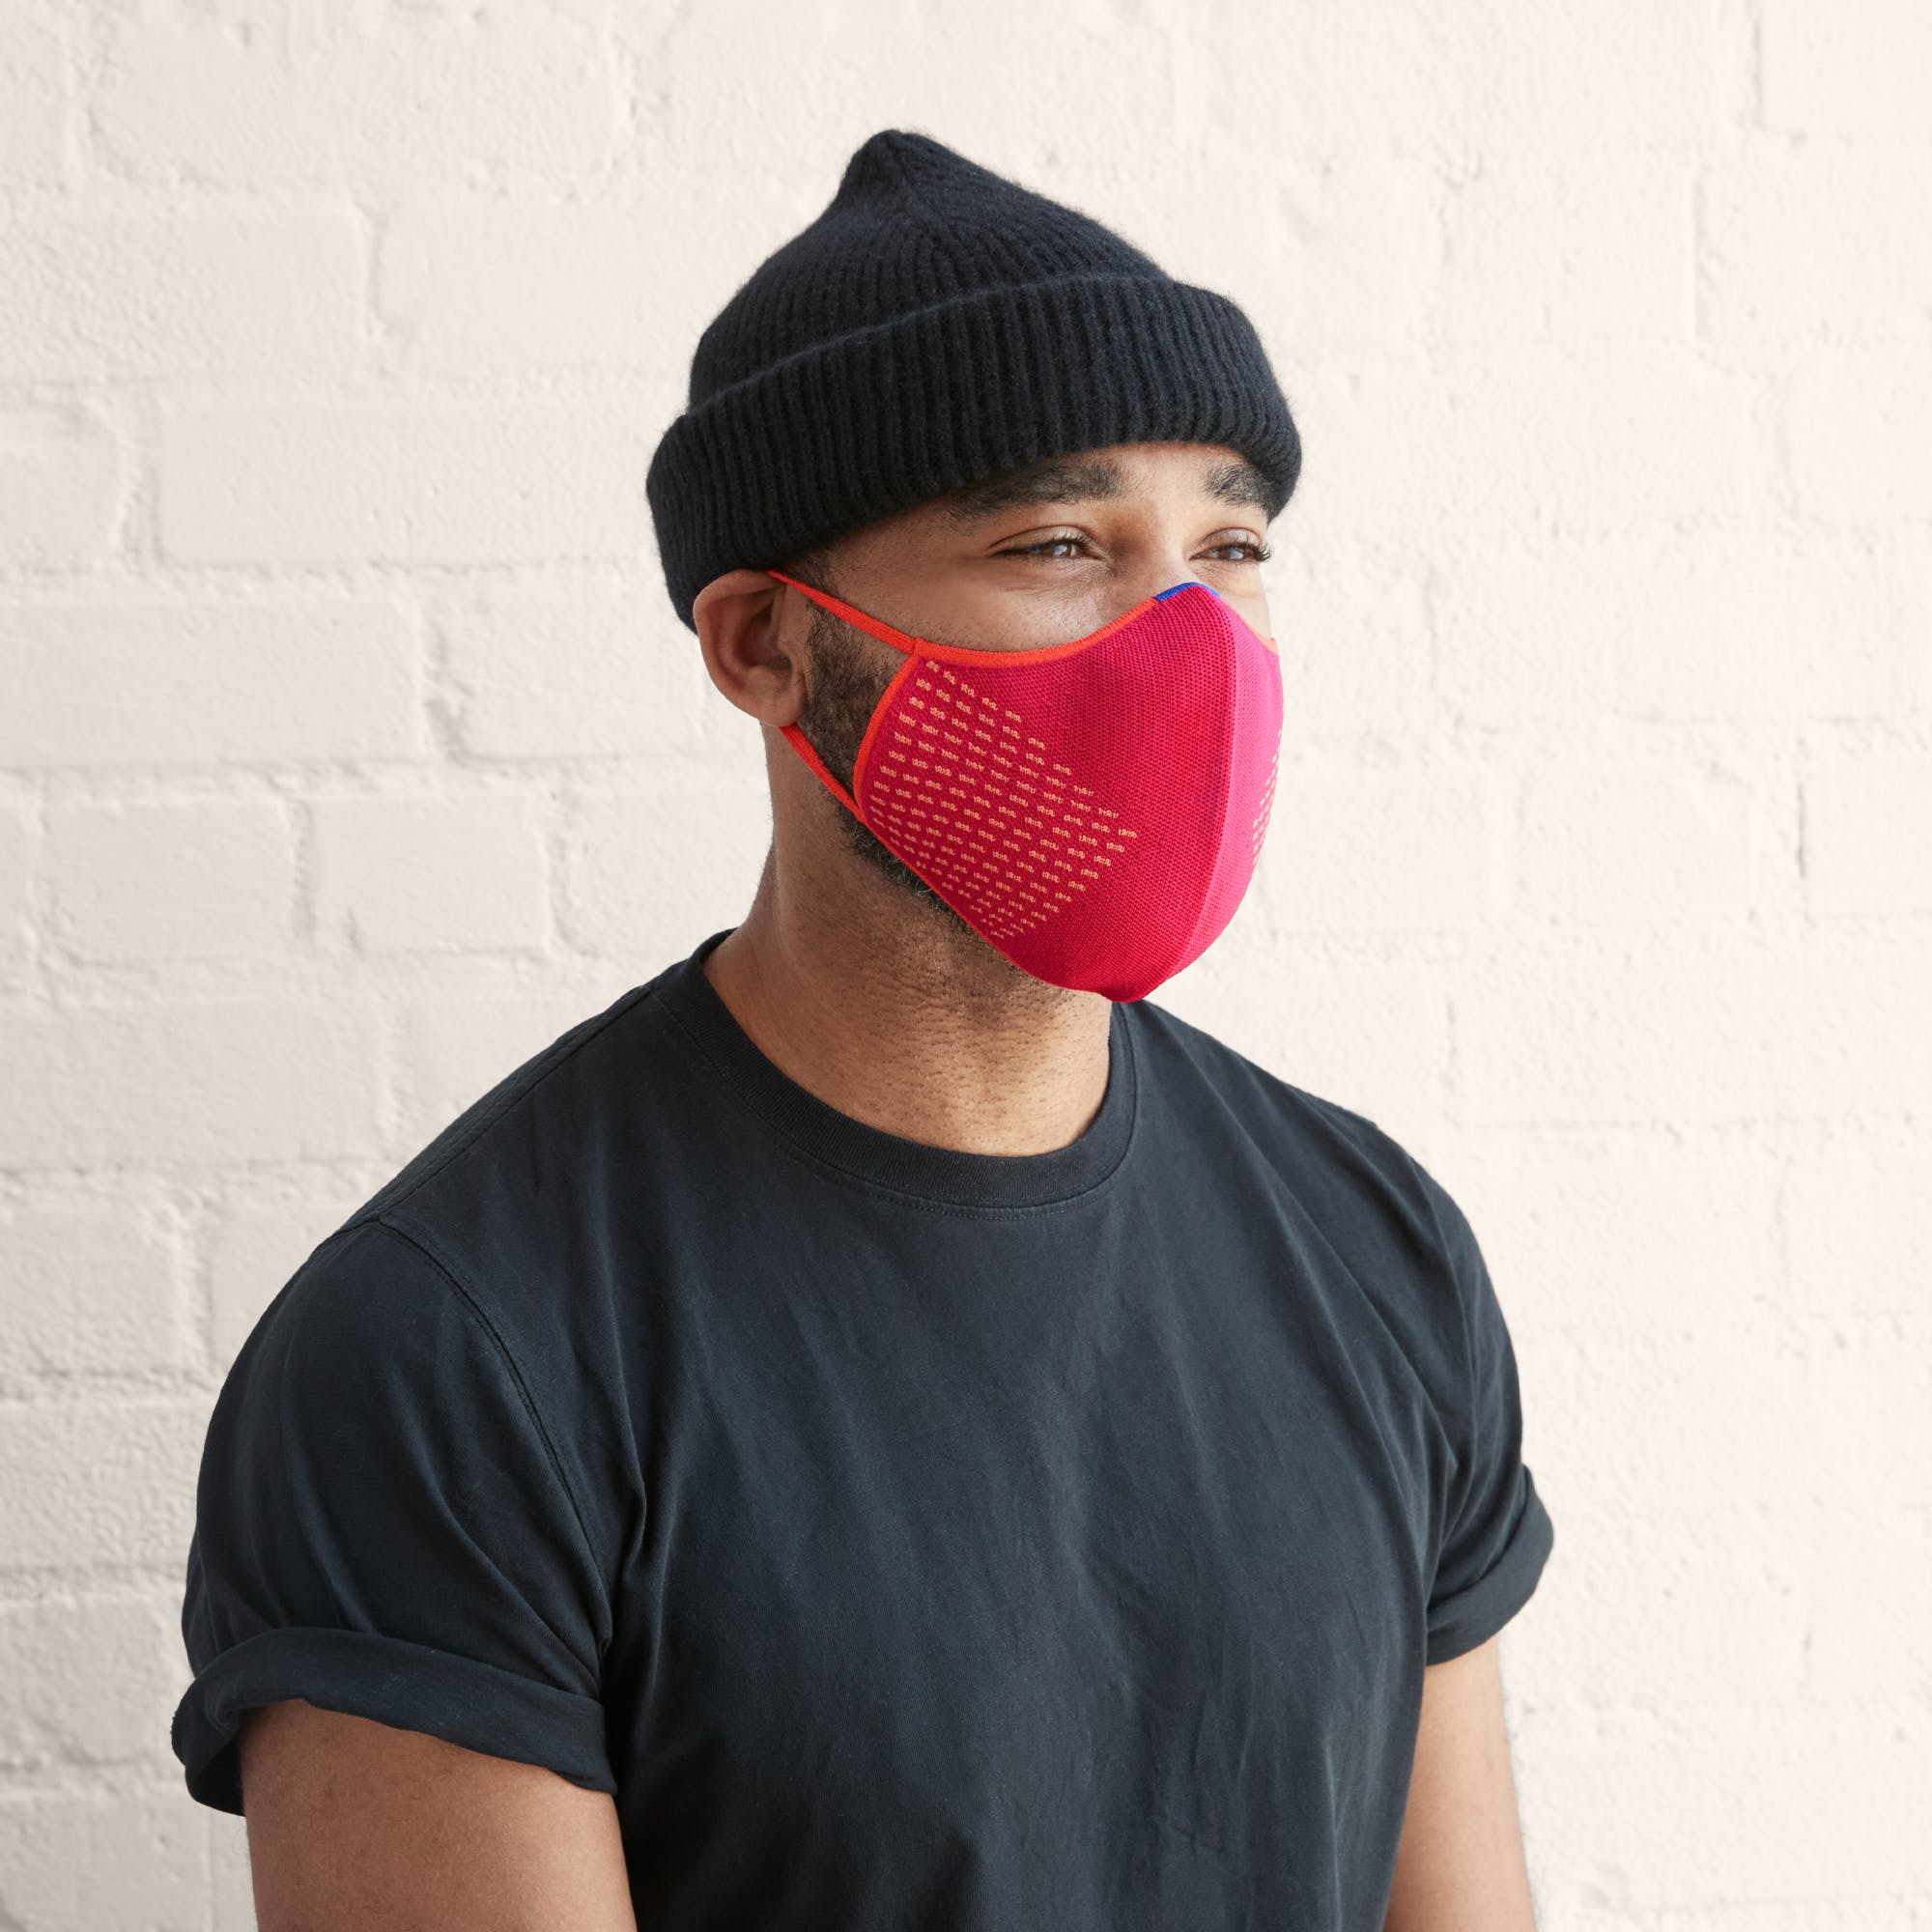 Man shown wearing a bright pink mask with light orange stitching details on the side.